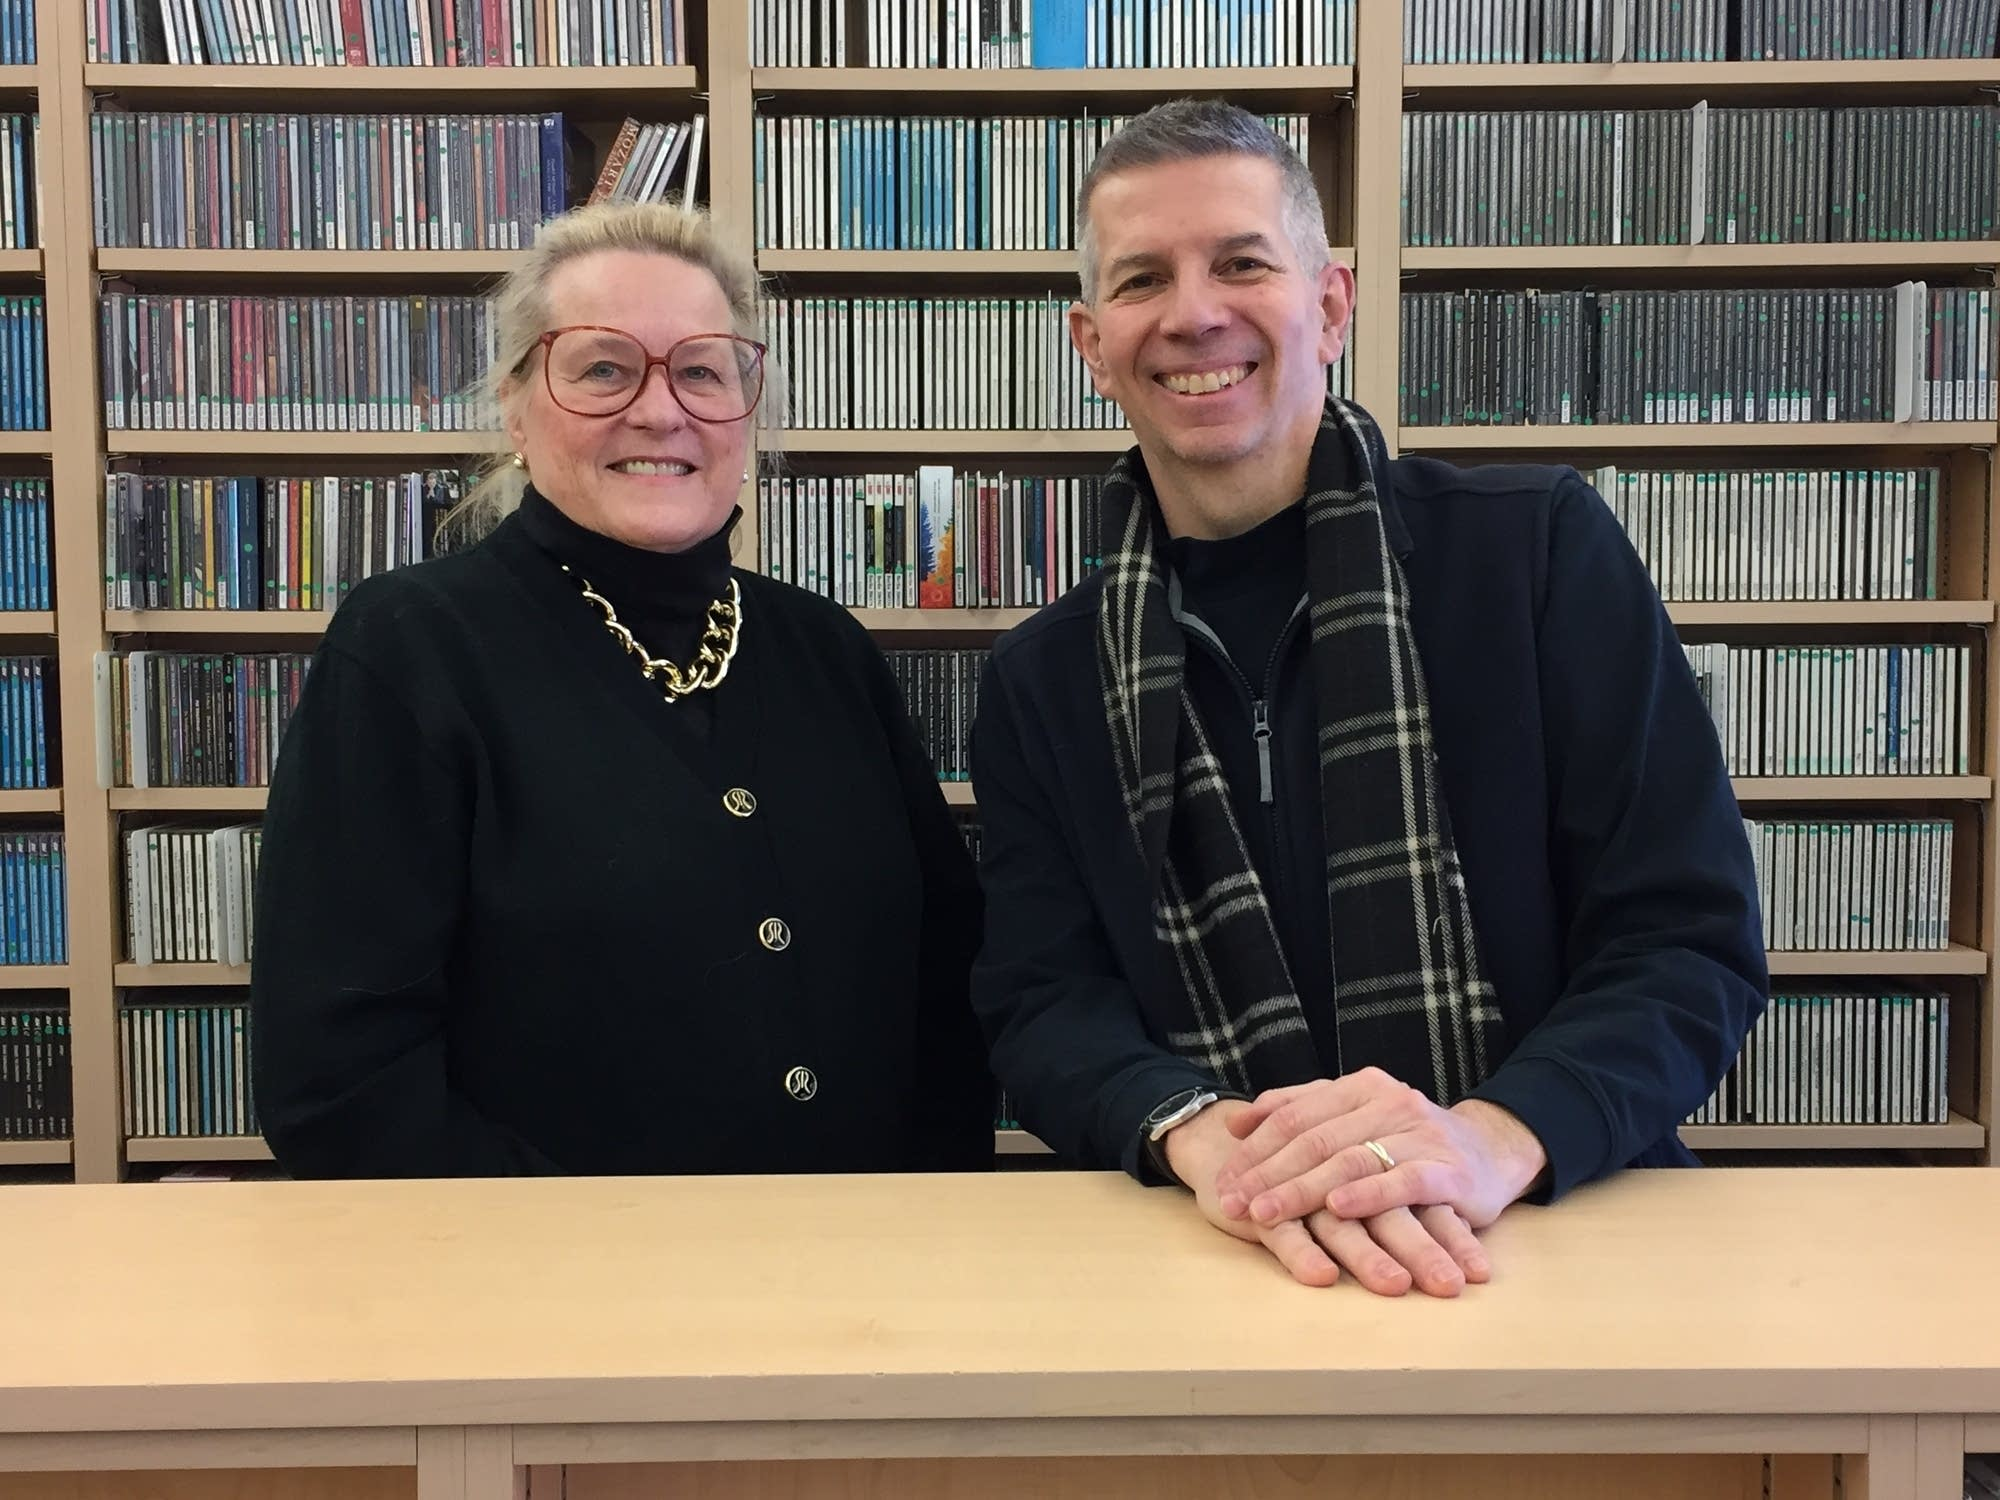 Arlys Whitaker and MPR's Steve Staruch